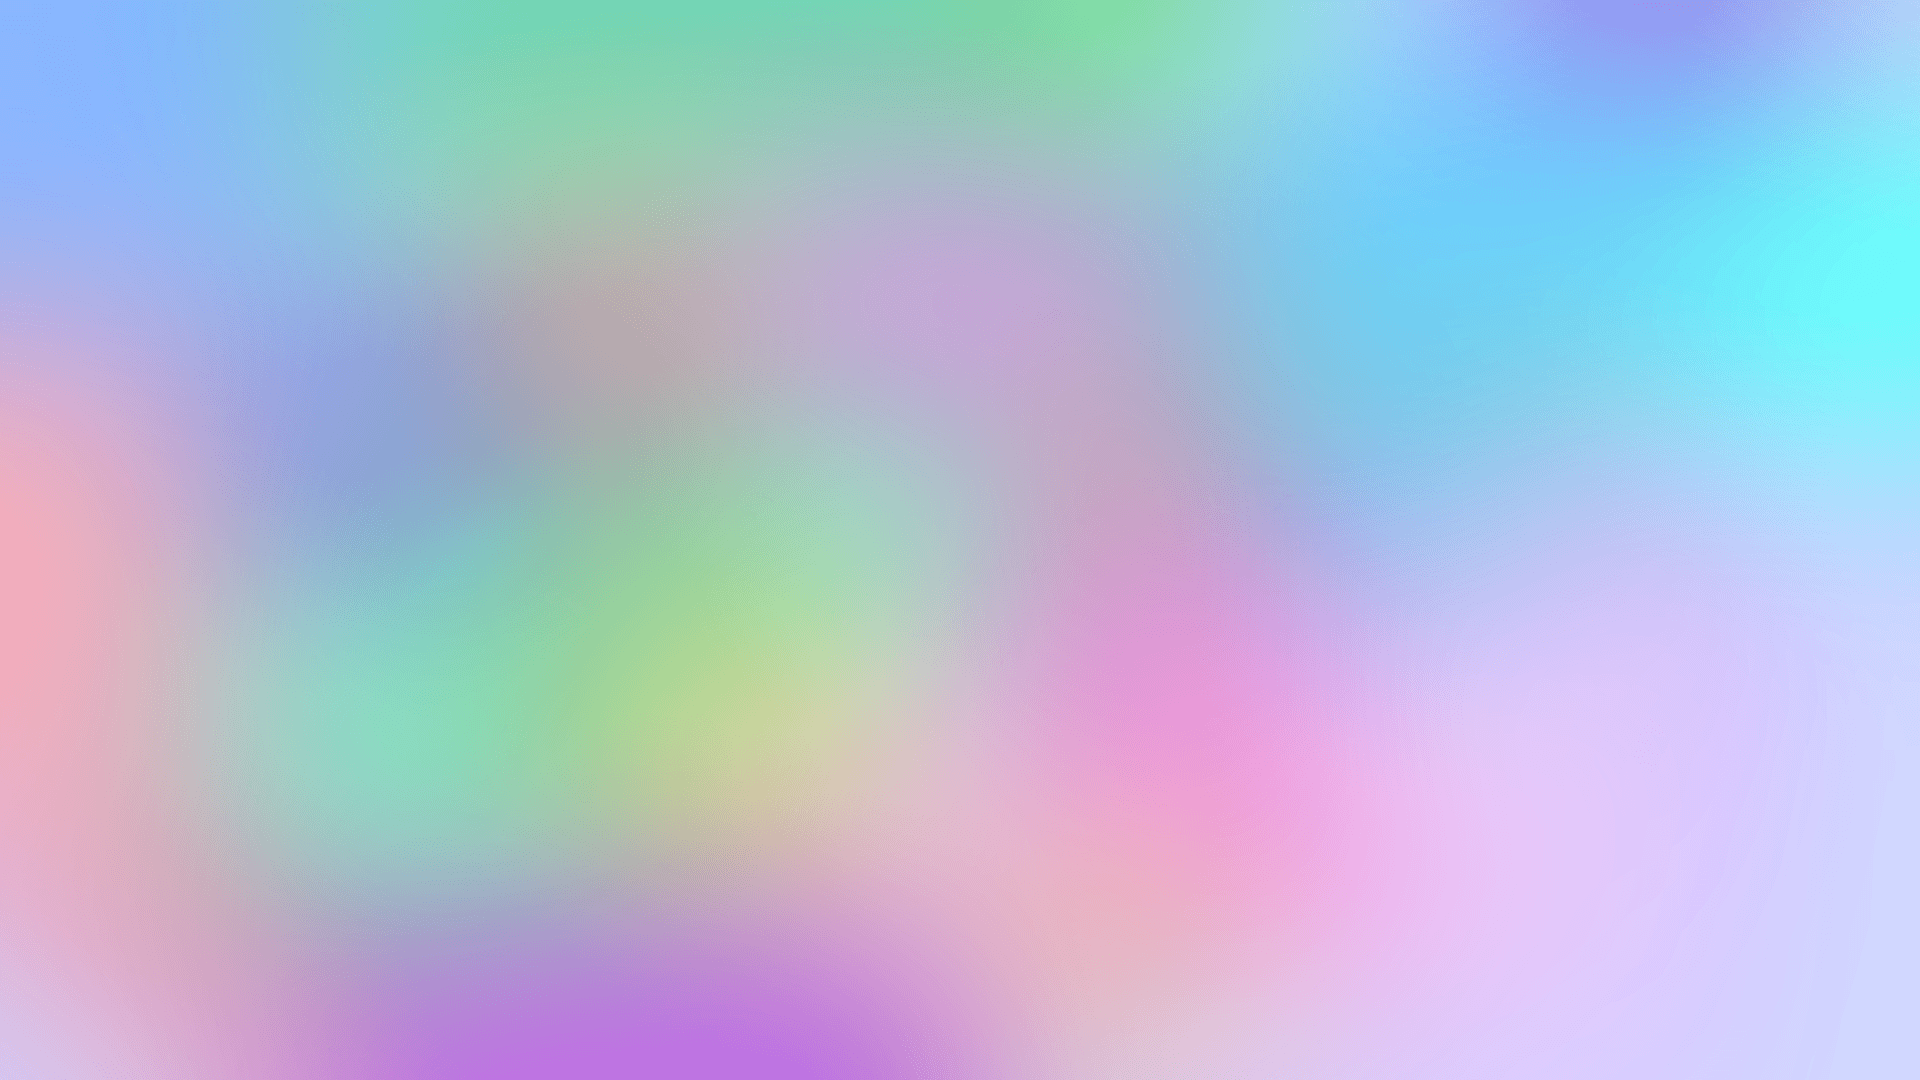 Pastel Backgrounds - Wallpaper Cave